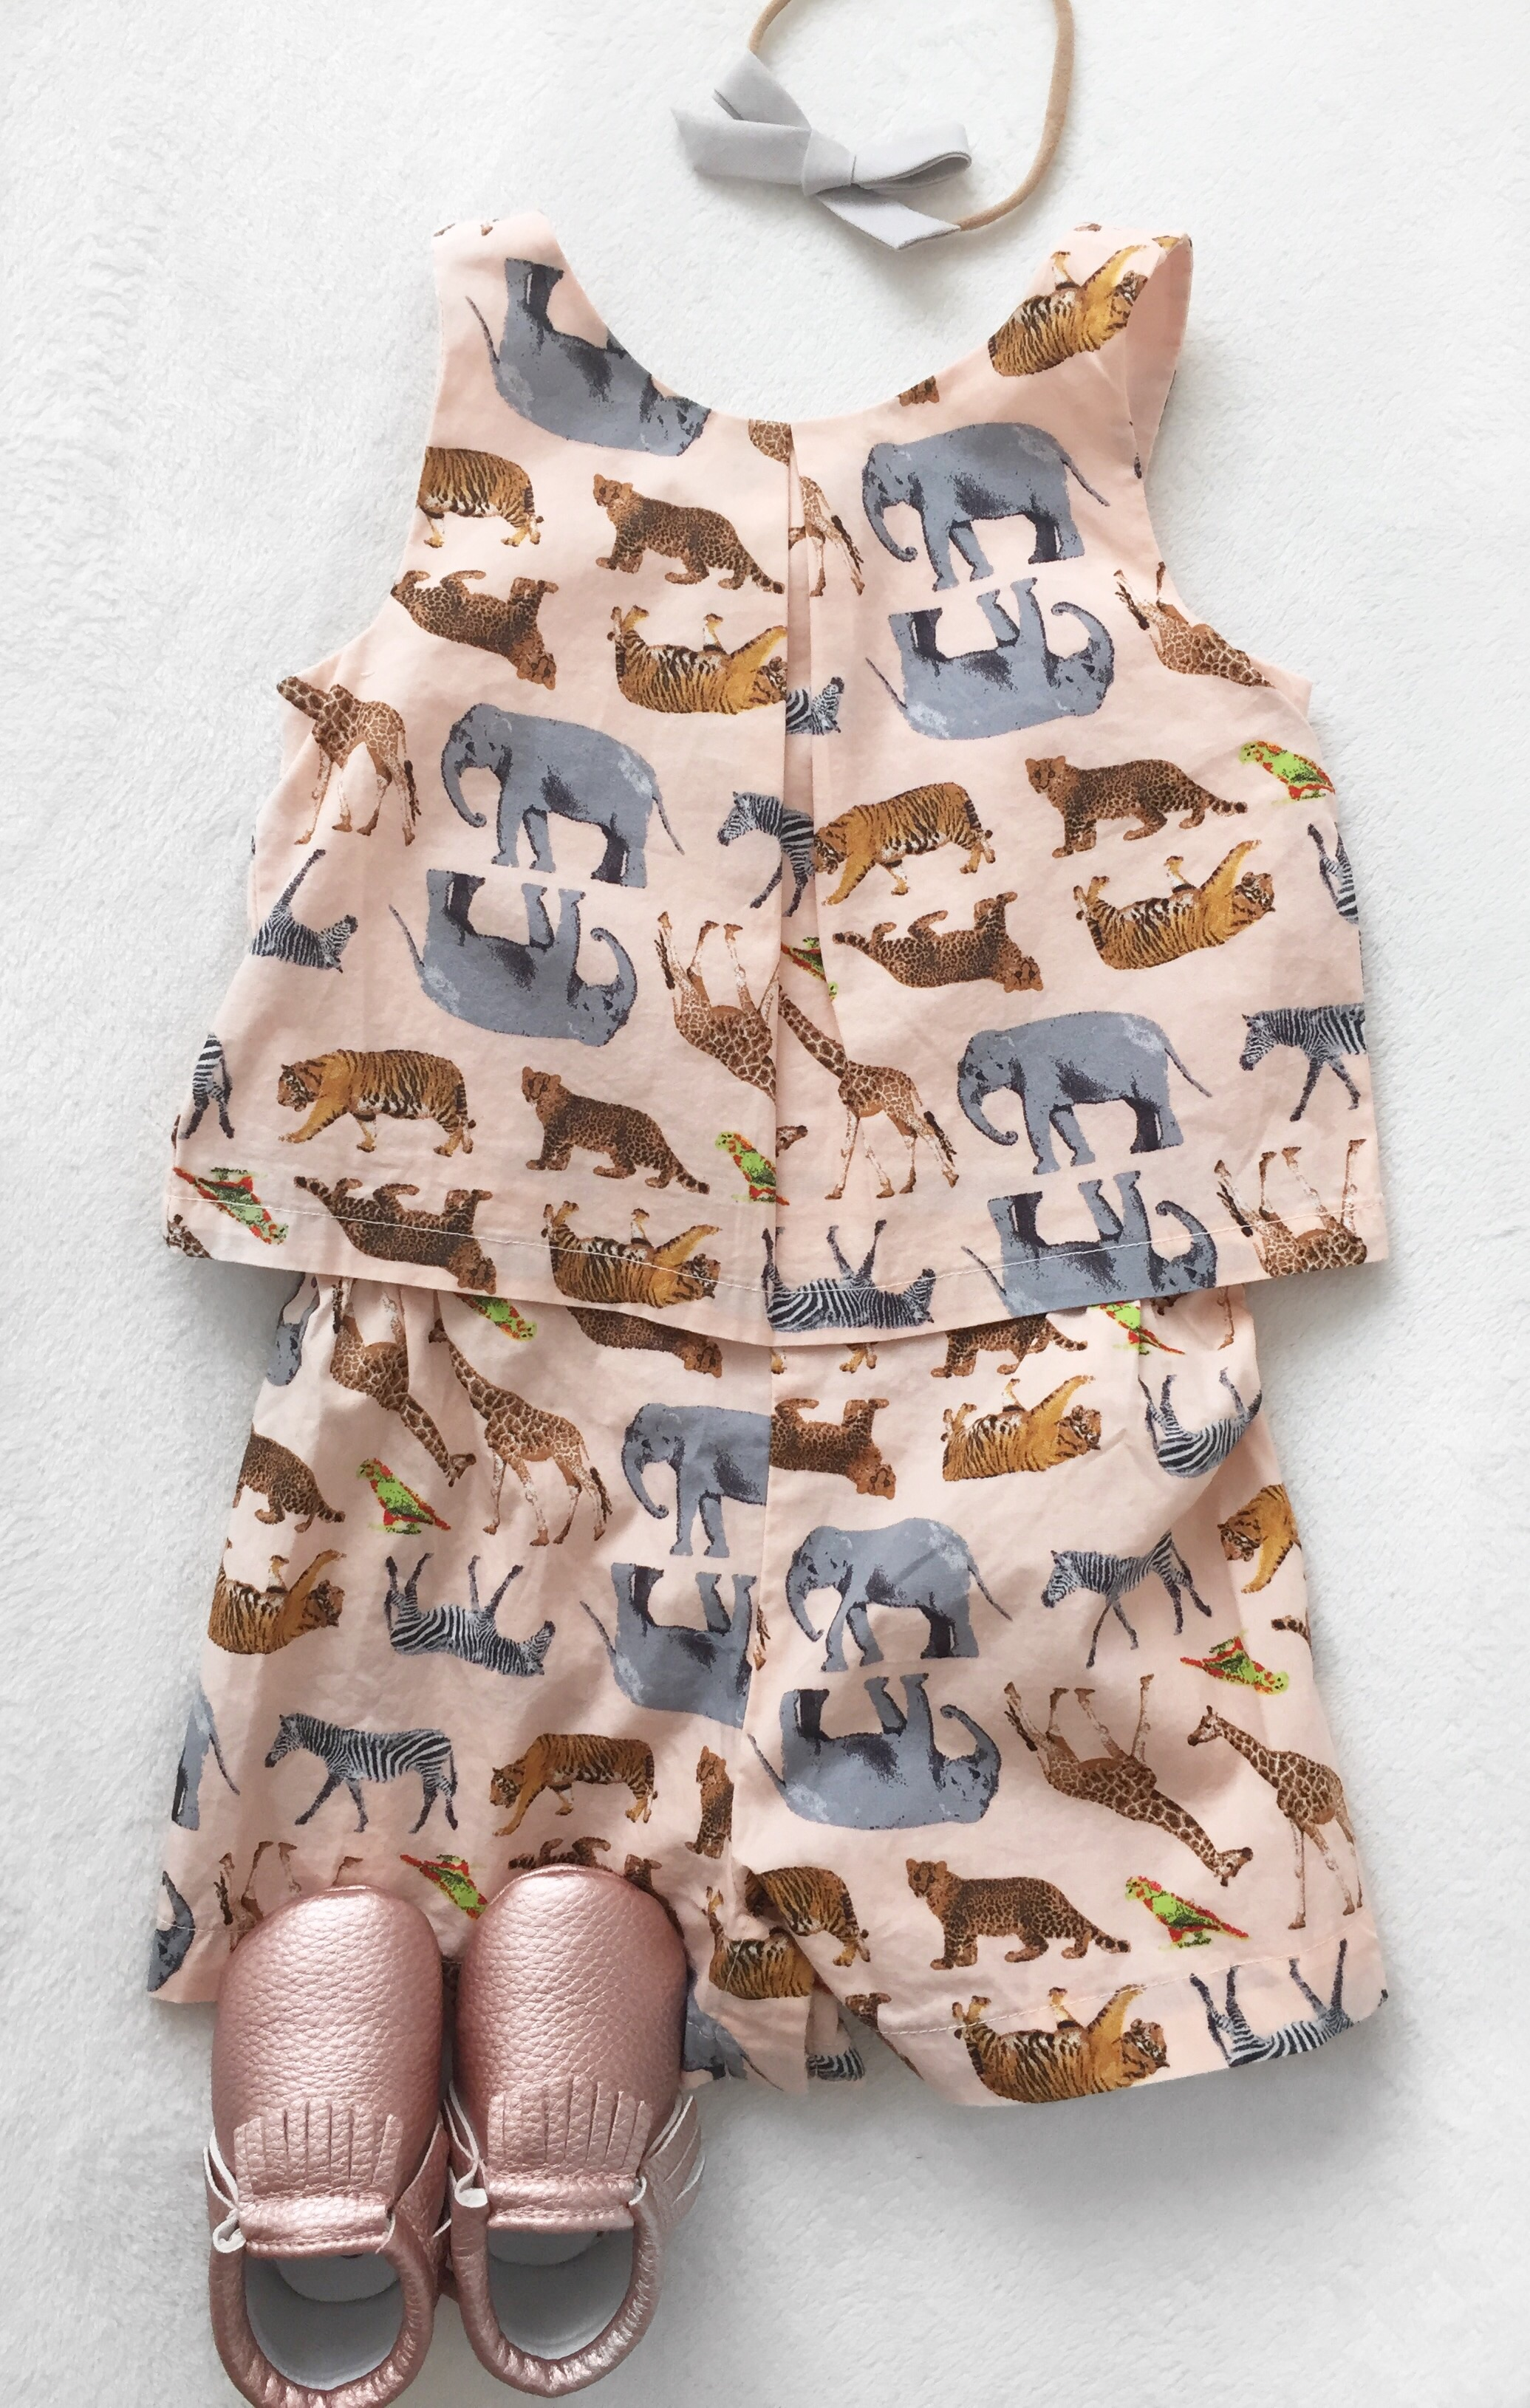 Gap Kids is just really speaking to me with their zoo animals + pale pinks